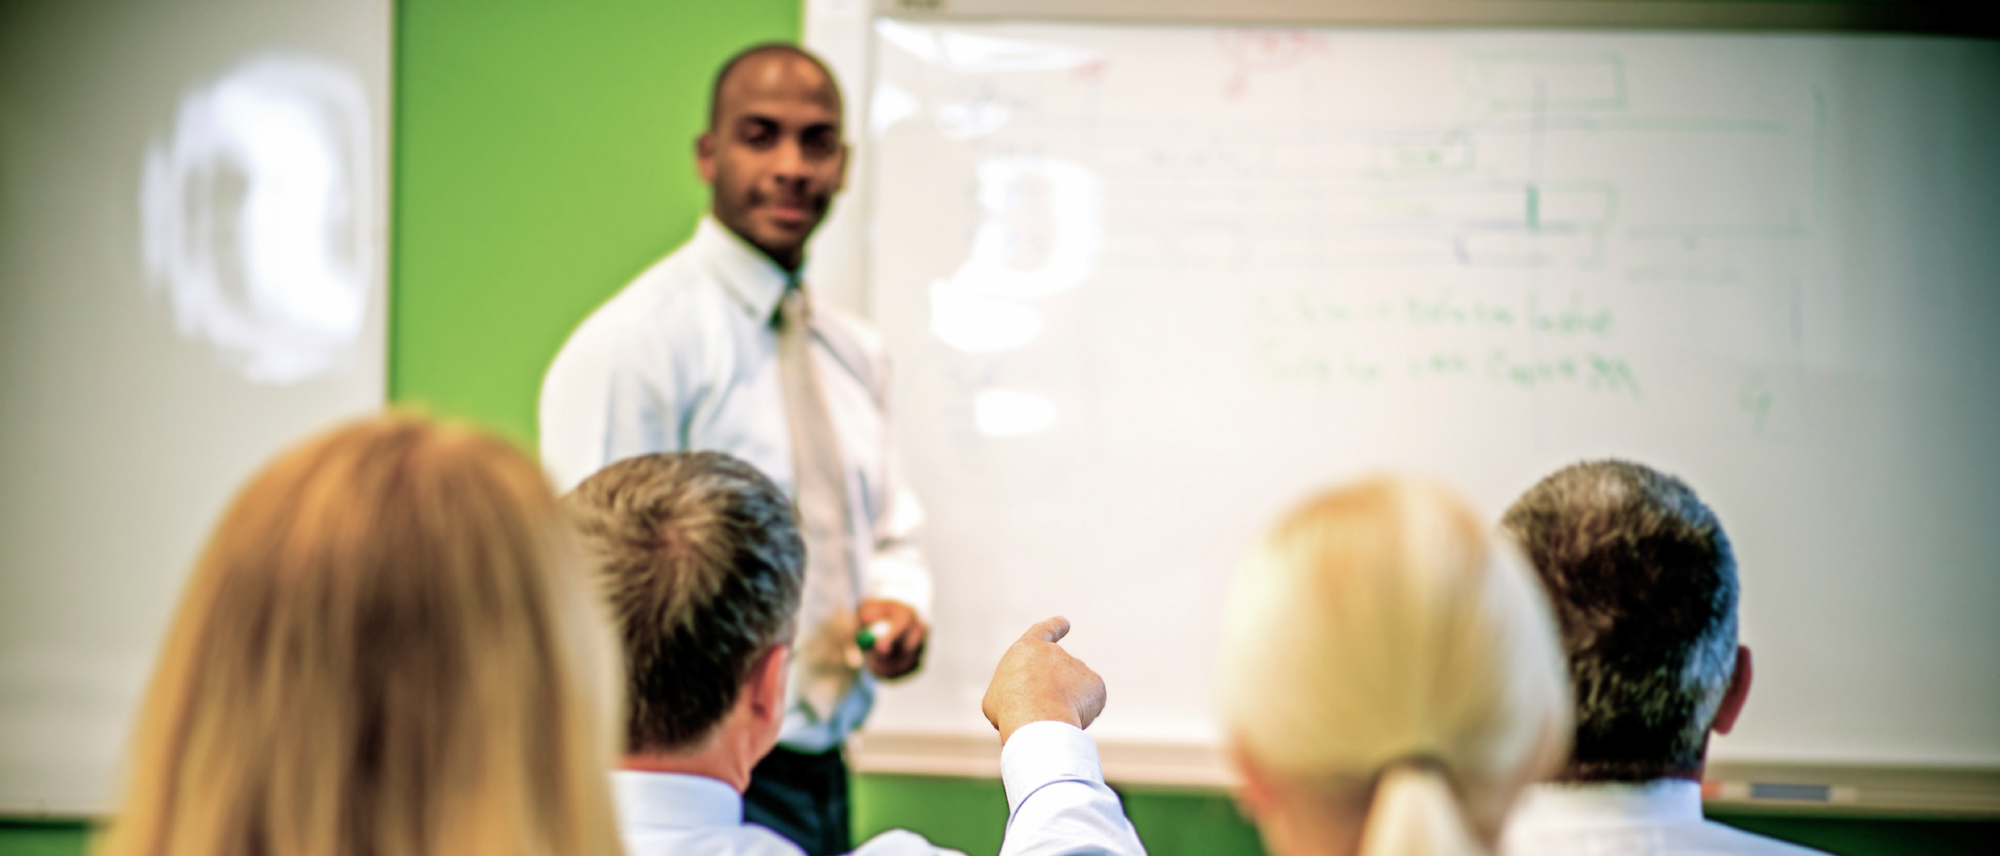 A man teaches a class of adults. A student points at the board and makes a comment.